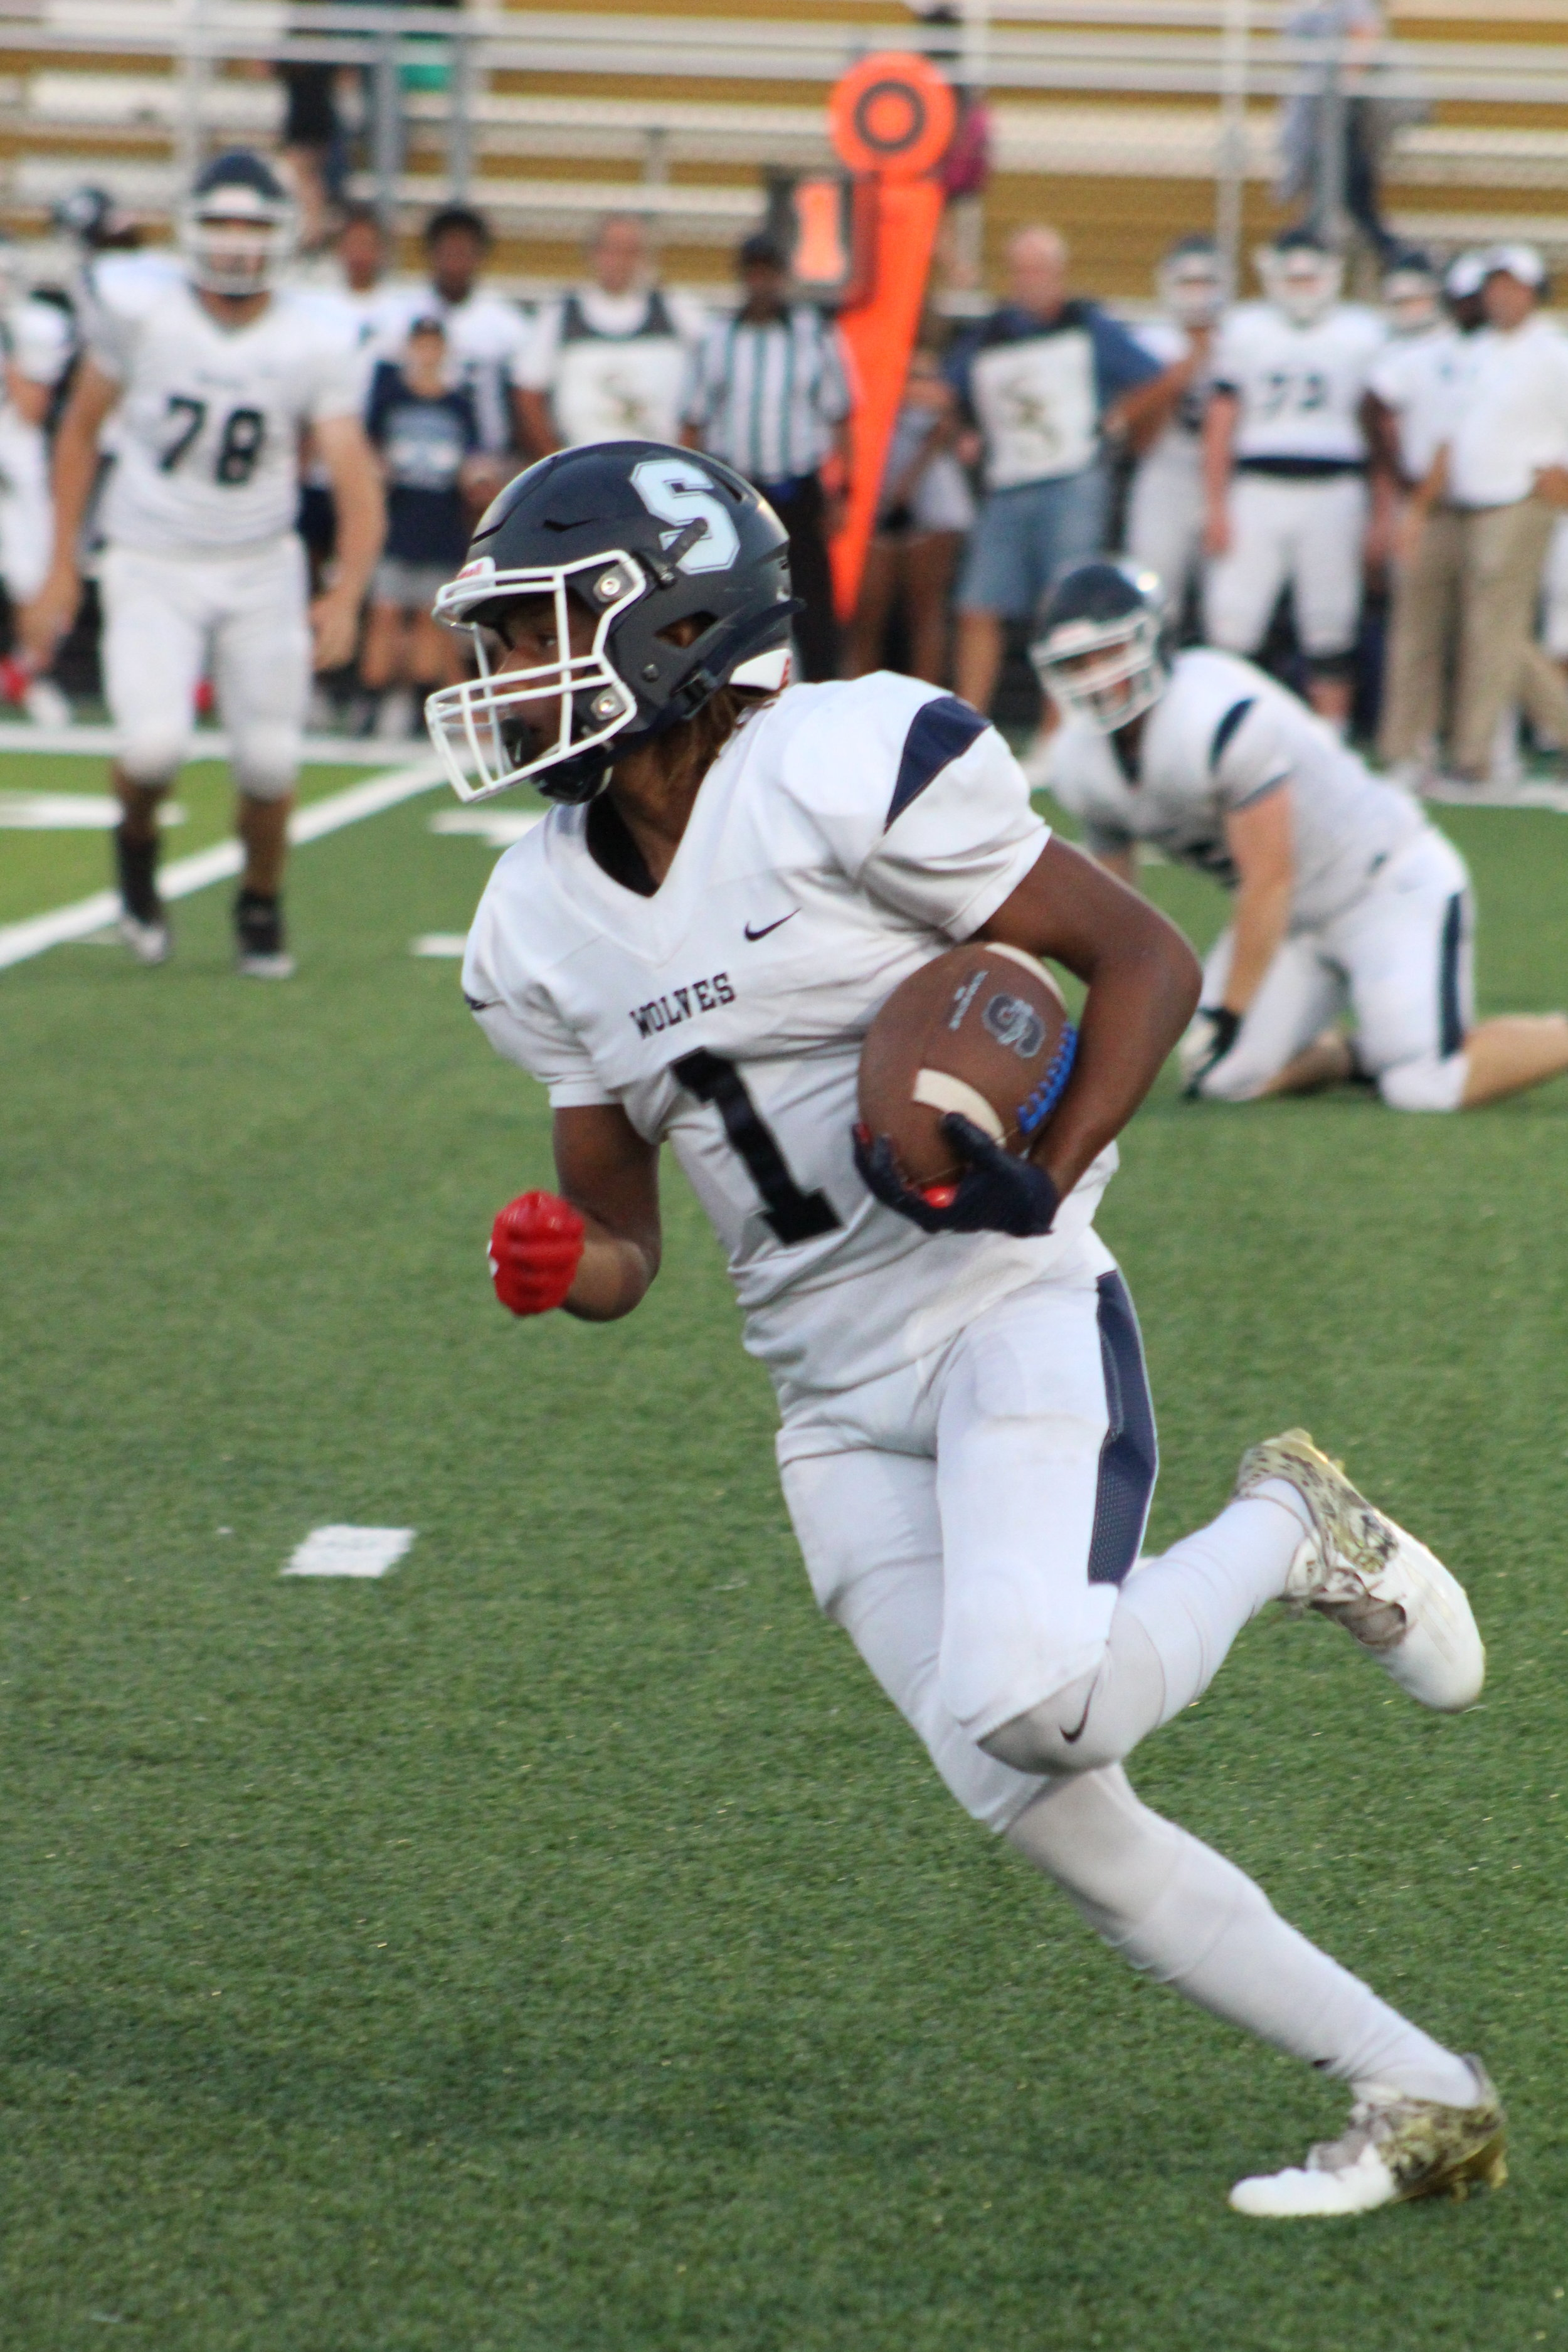 Demetress Beavers was 18-71 rushing for the Wolves.